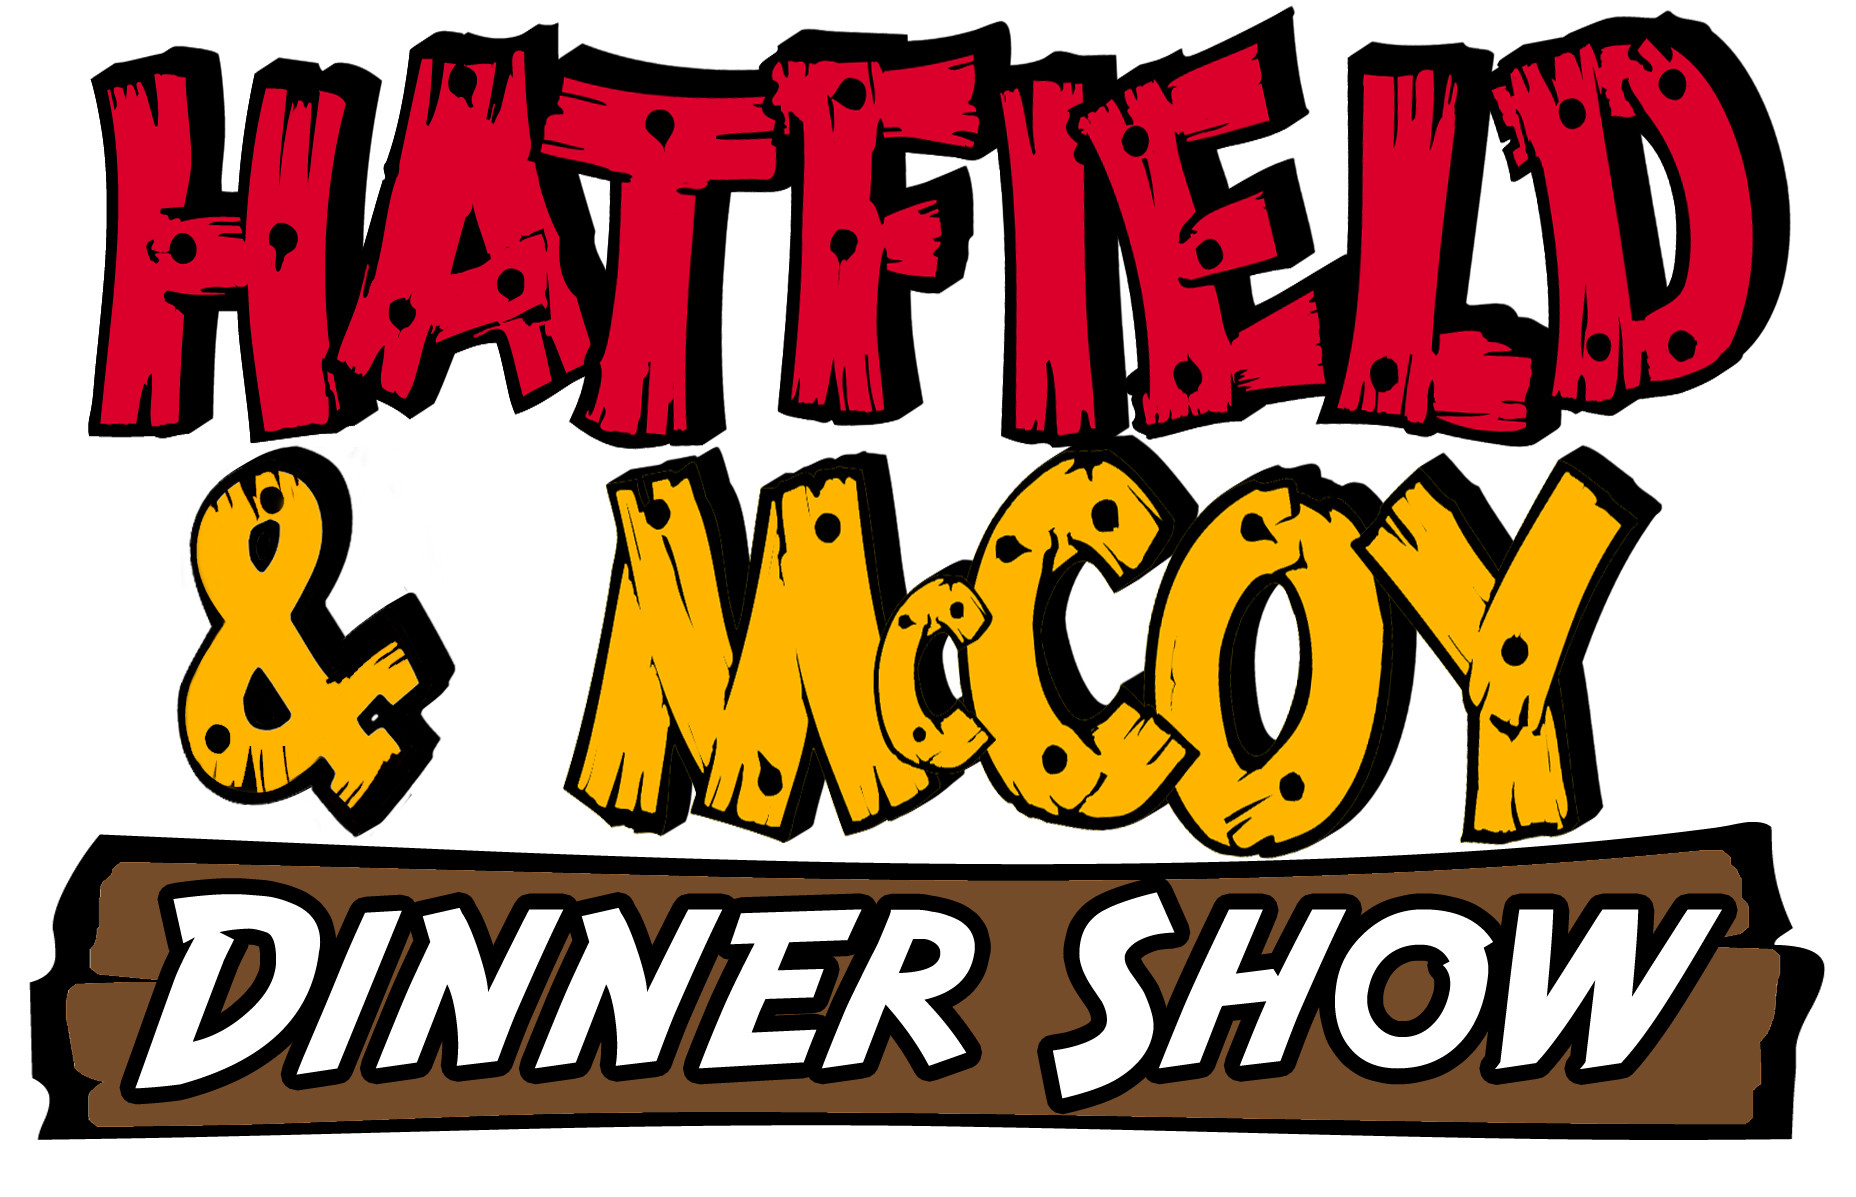 Hatfield And Mccoy Dinner Show Coupons  Hatfield & McCoy Dinner Show at Pigeon Forge Tennessee